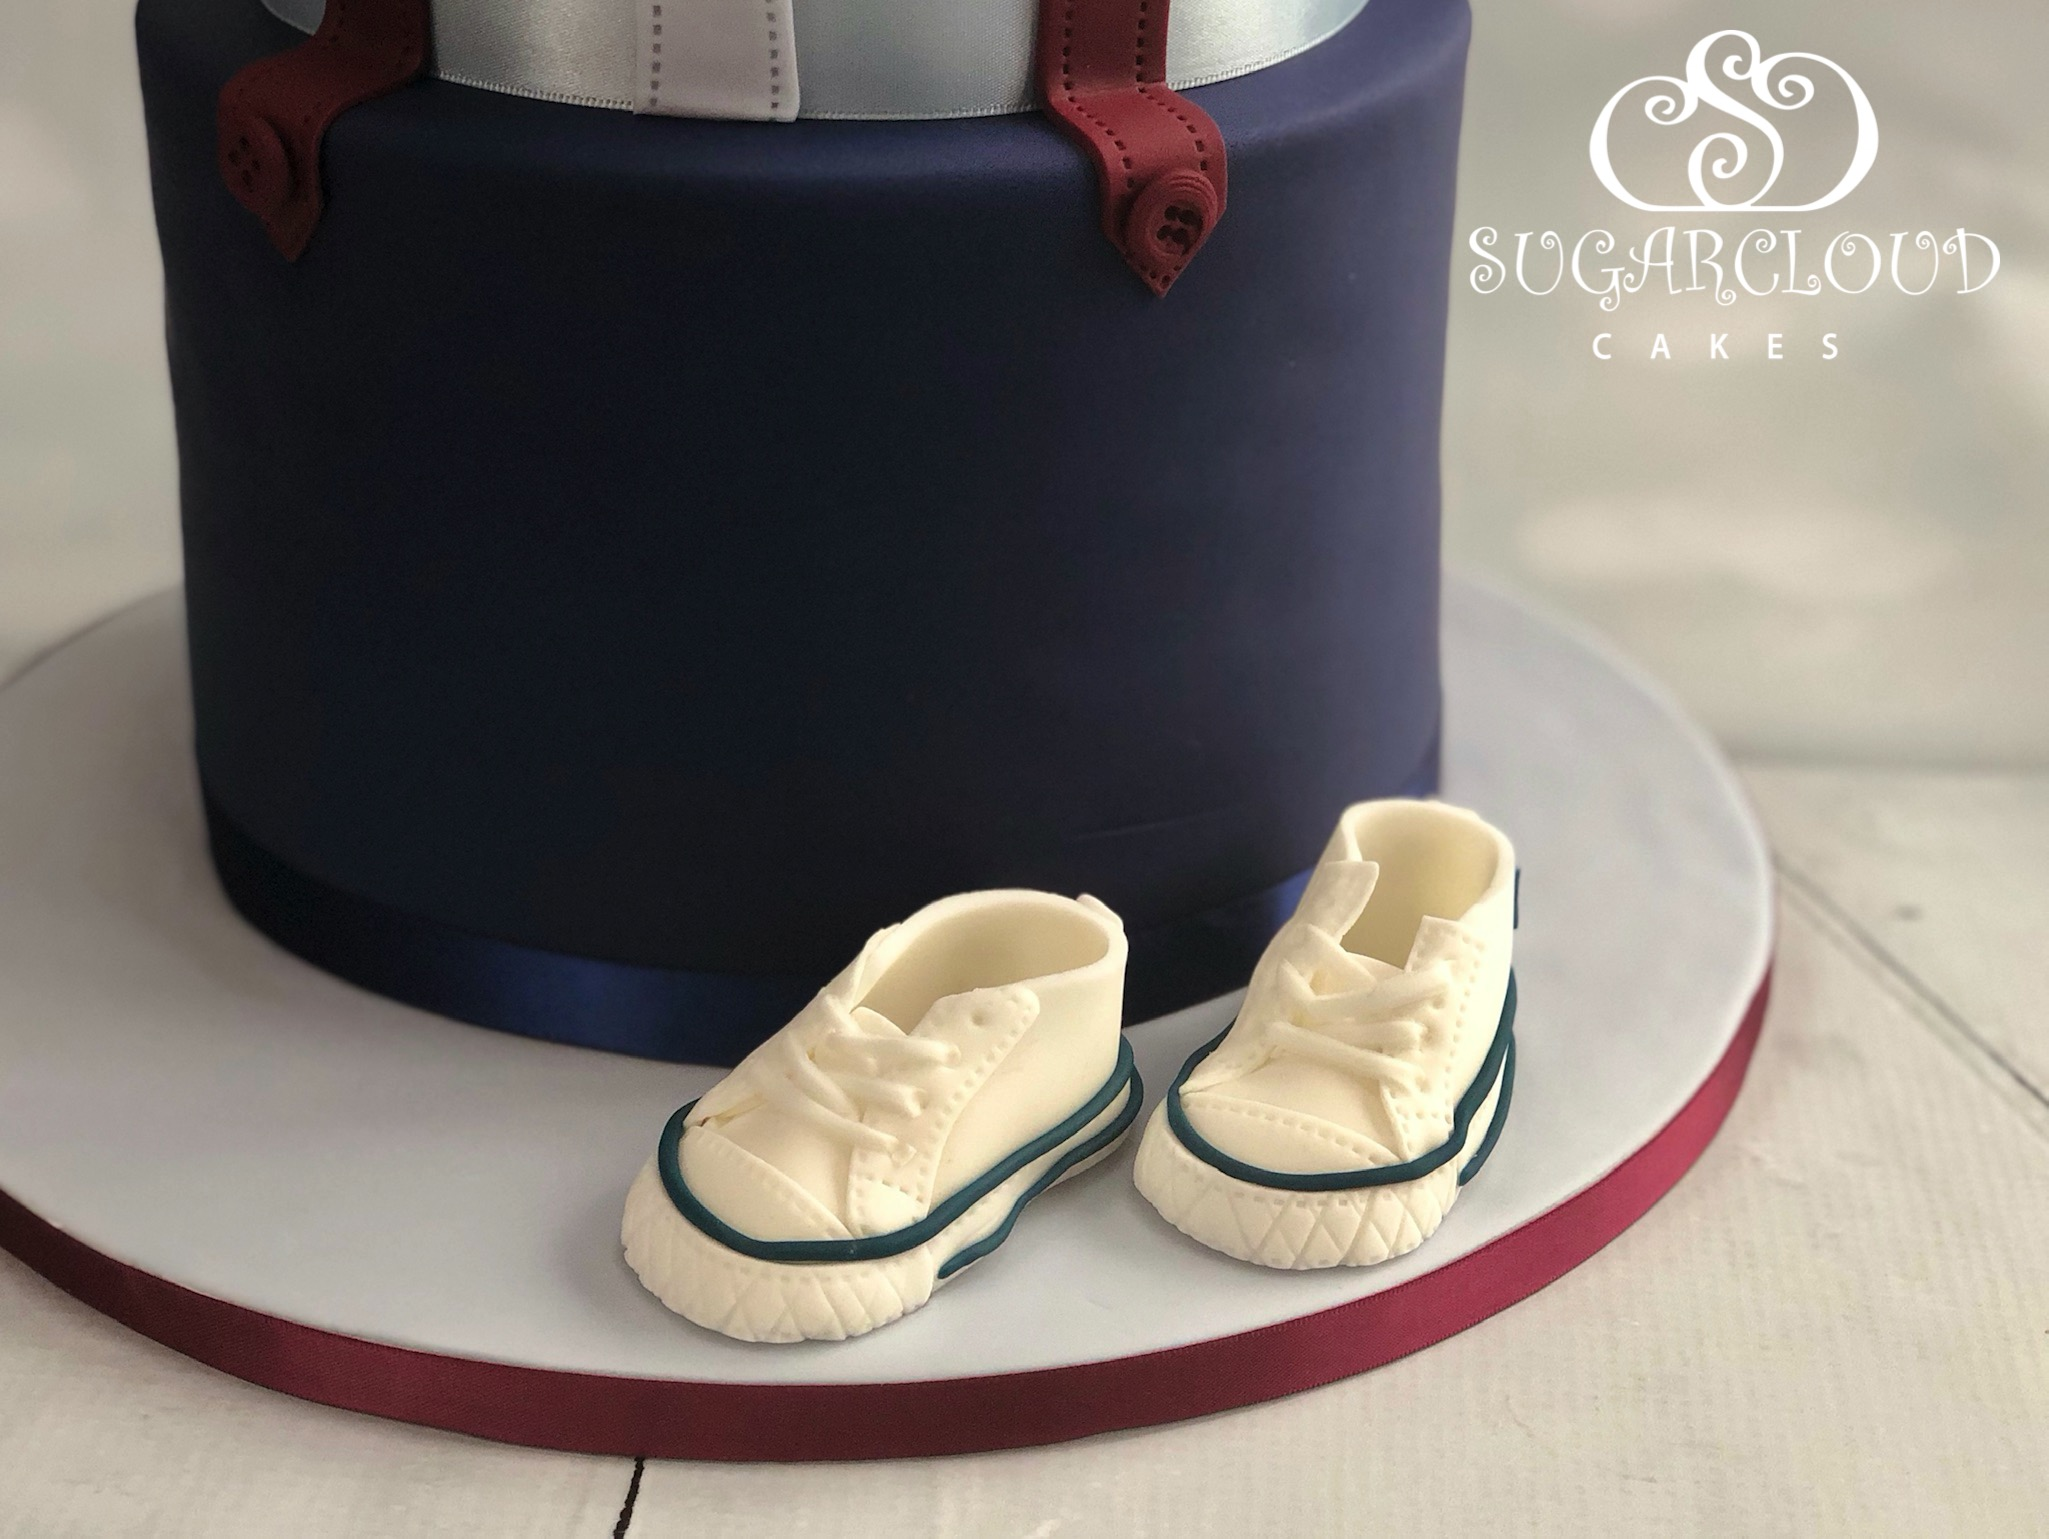 A Christening Cake for Jacob